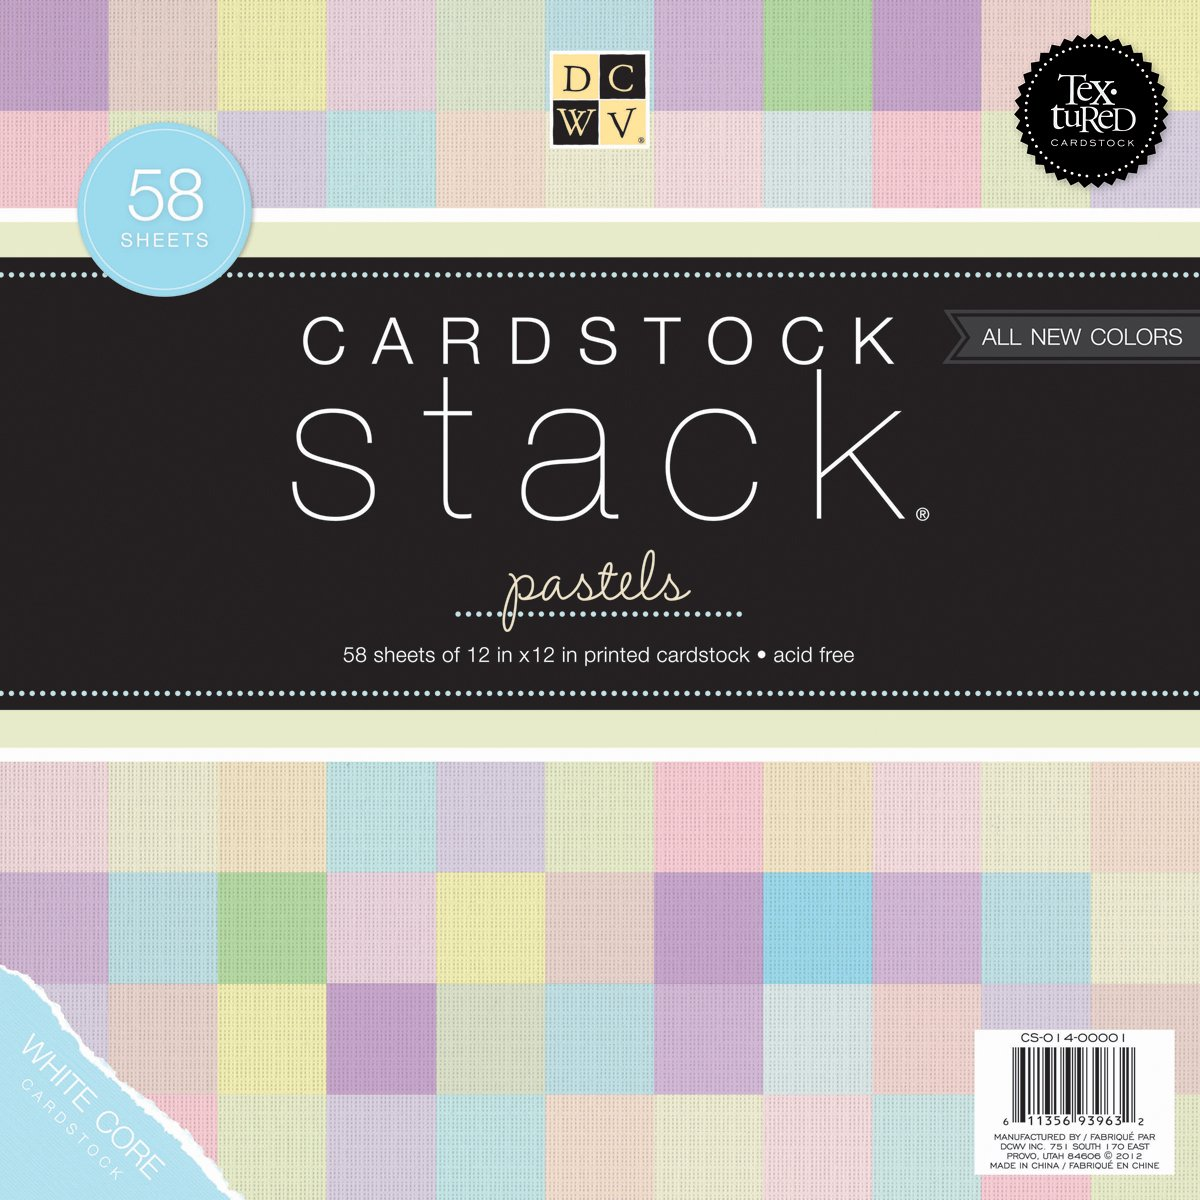 DCWV Cardstock Stack, Textured Pastels, 58 Sheets, 12 x 12 inches by American Crafts (Image #1)